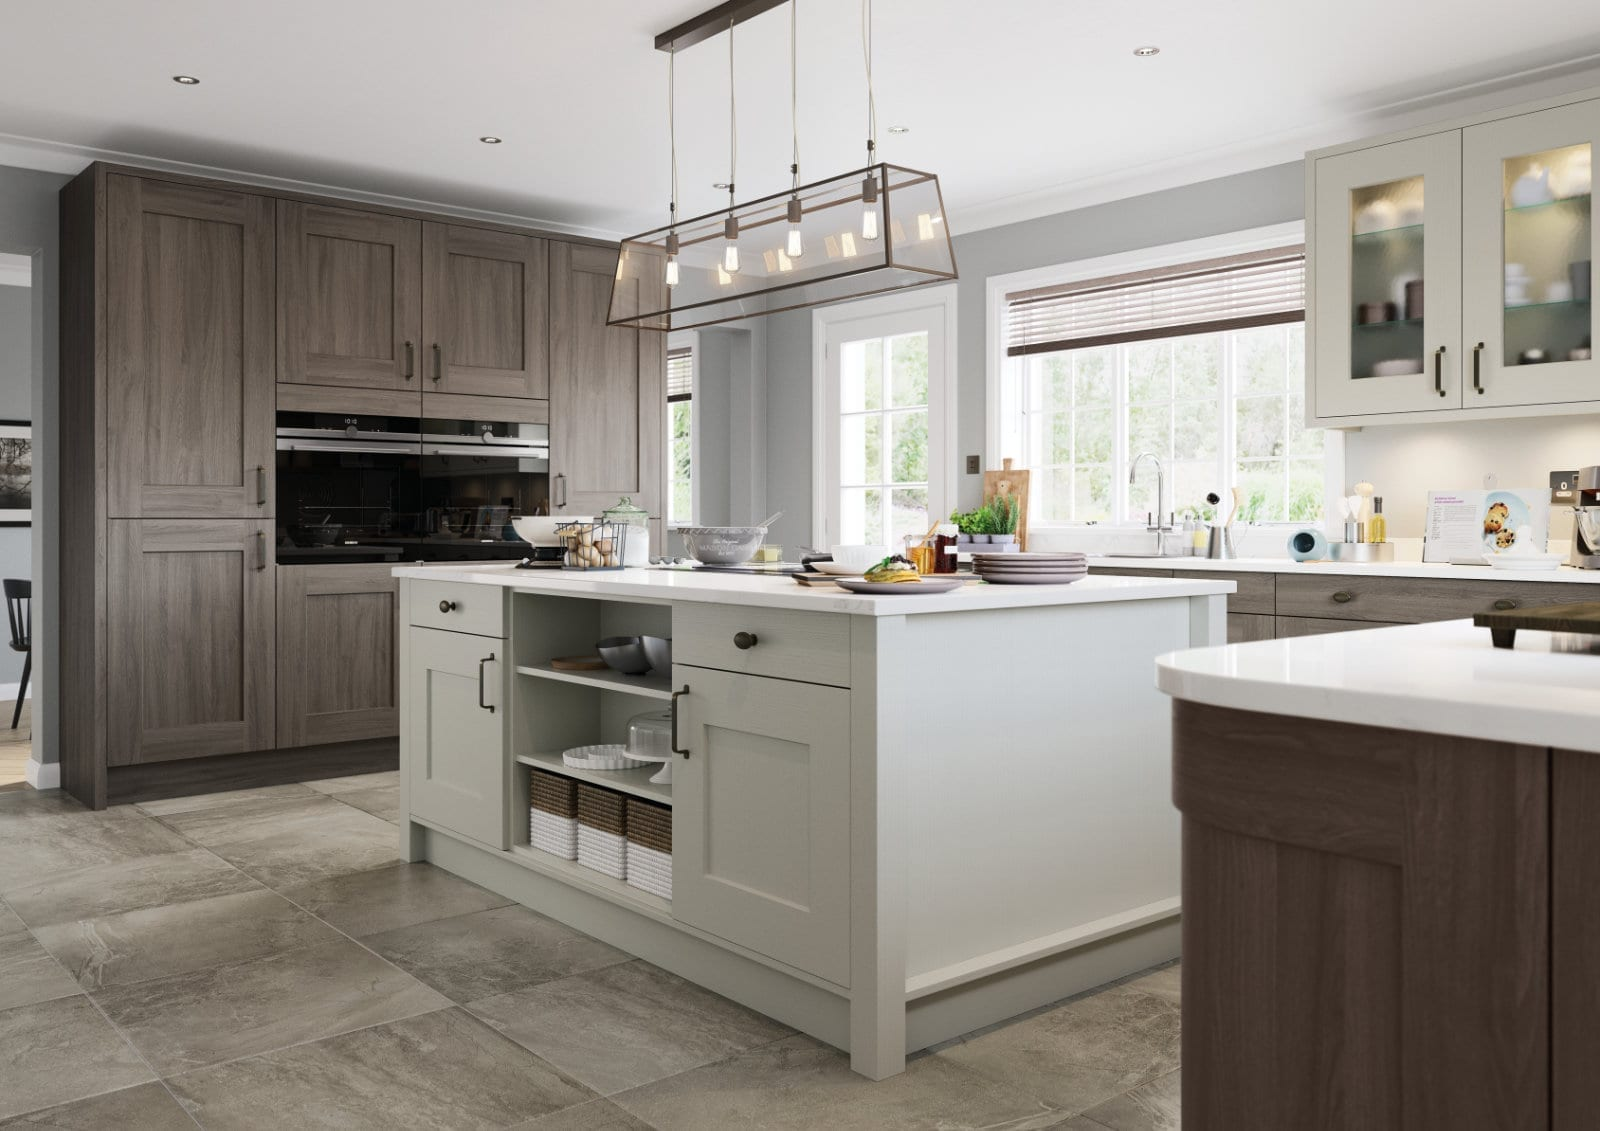 Alku Shaker Wood U Shaped Kitchen With Island | Unique Bedrooms Direct | Dunstable